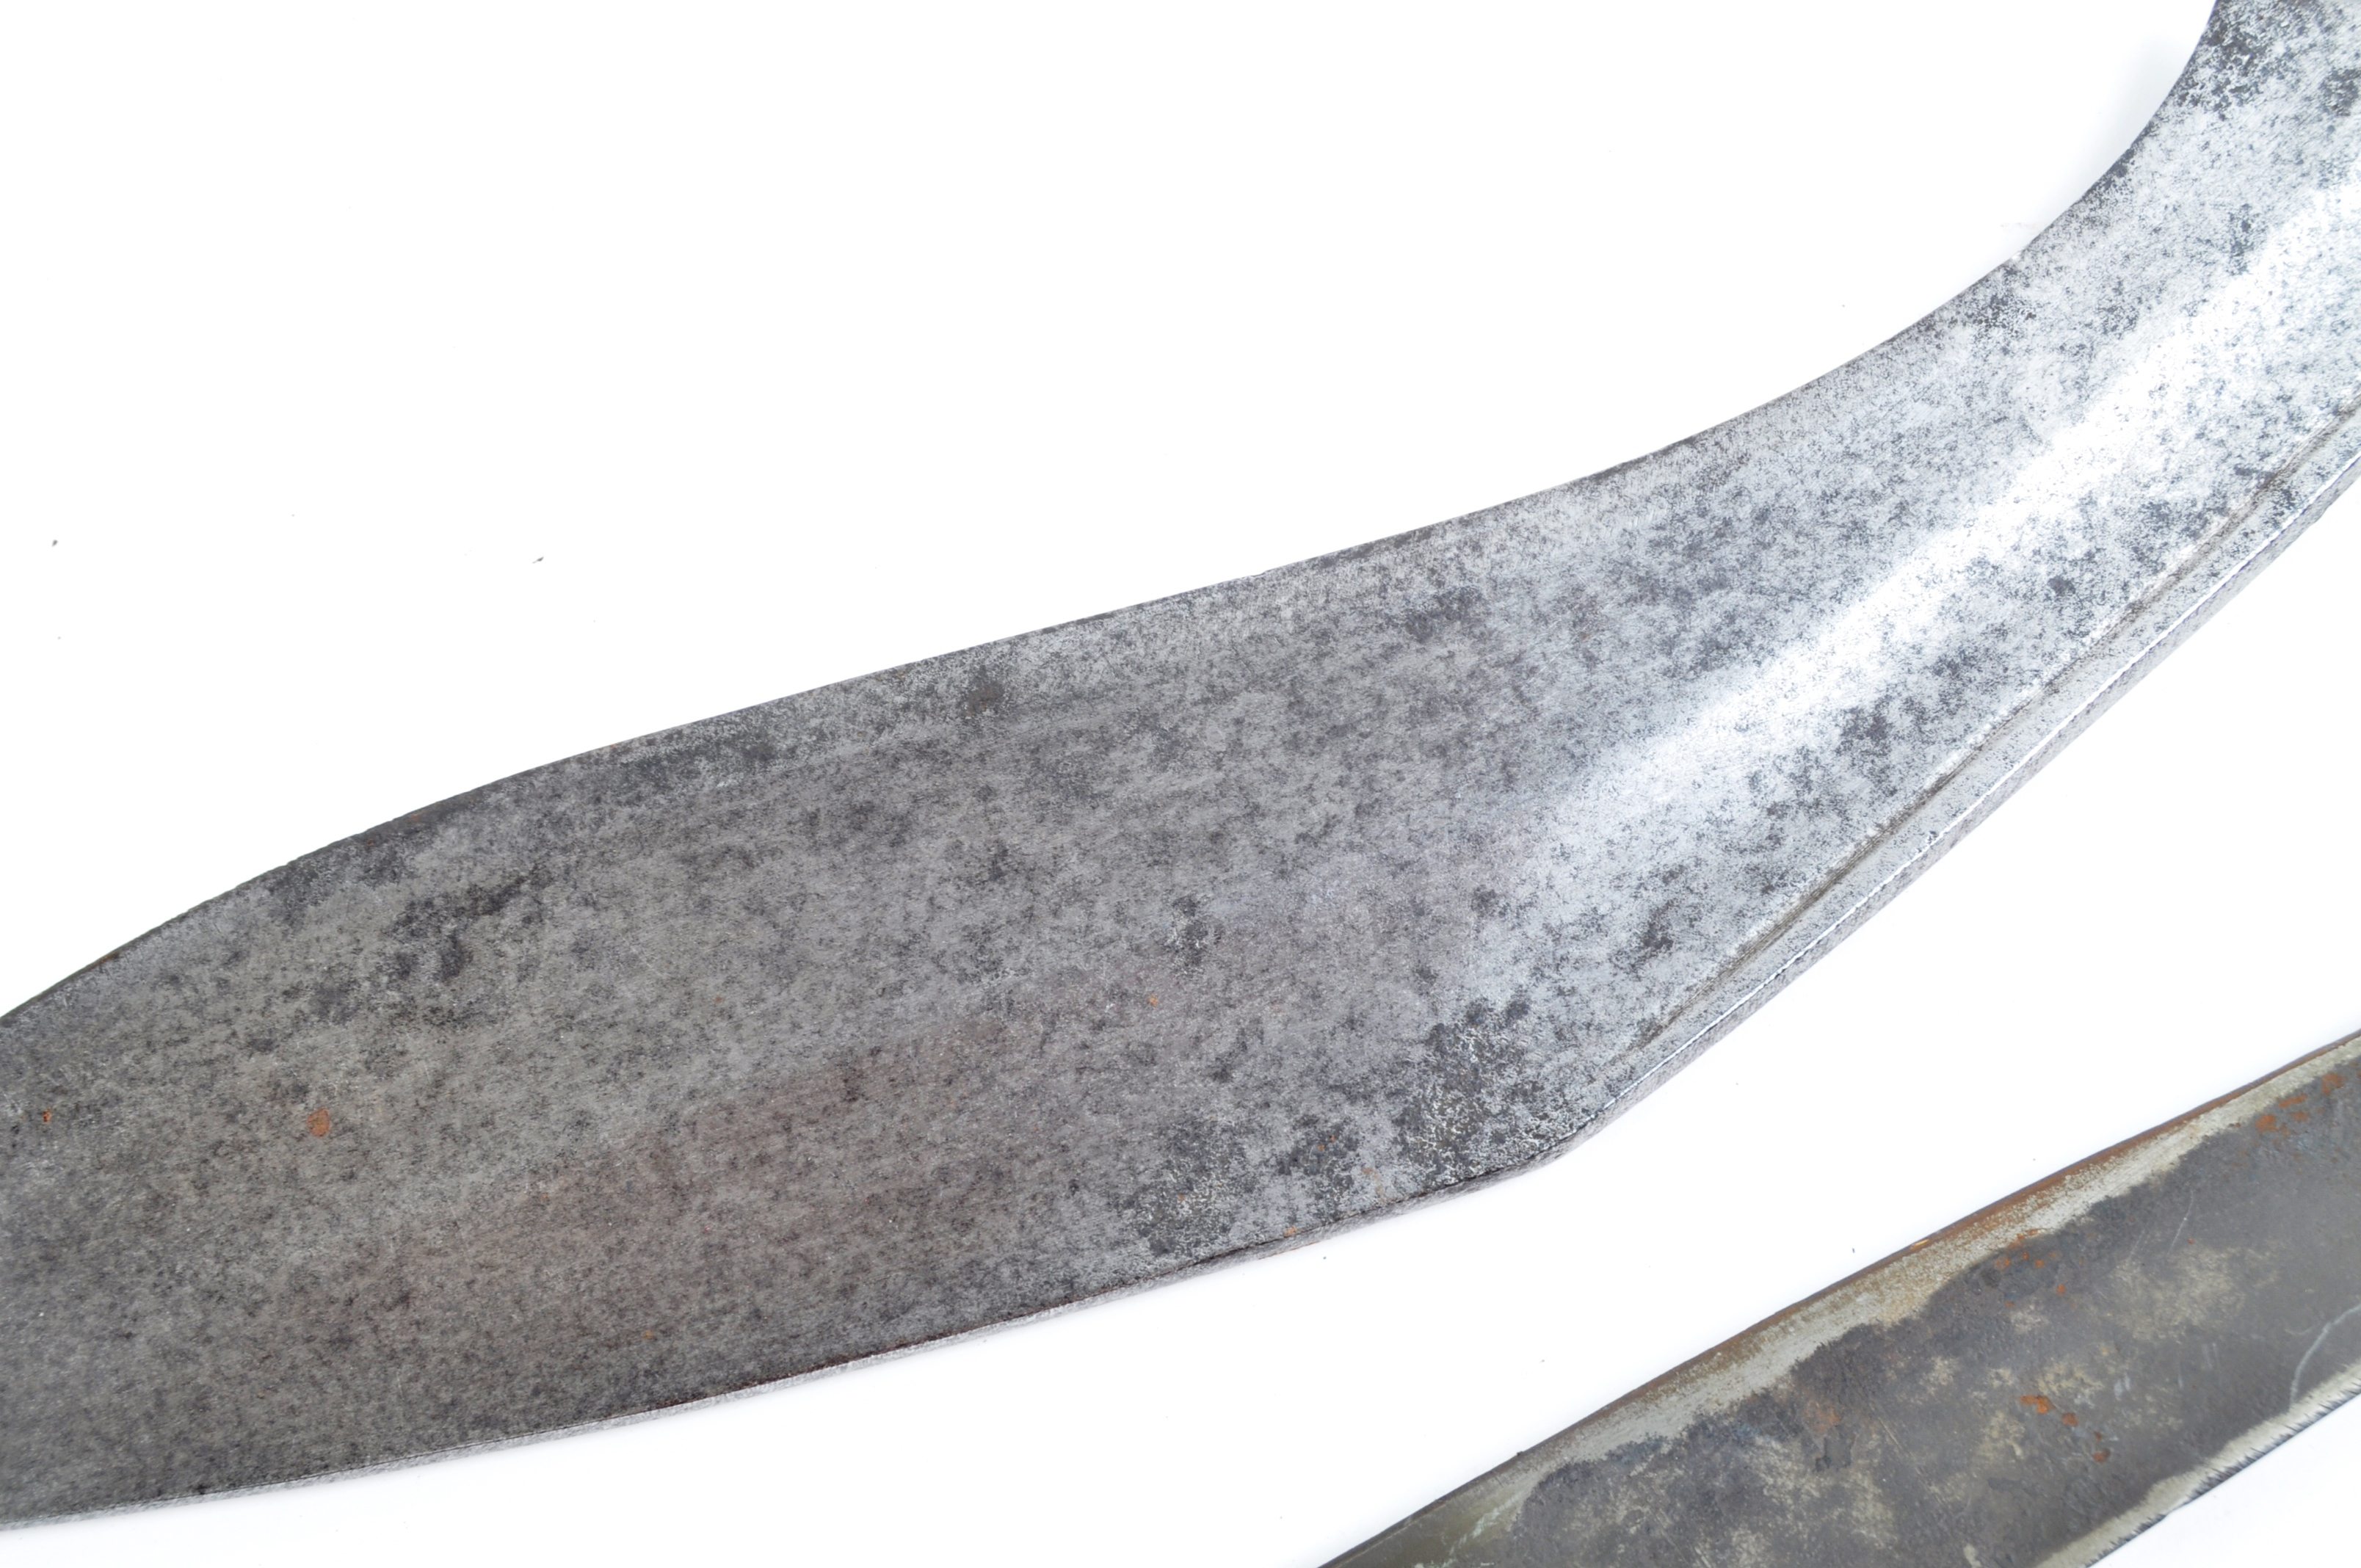 EDGED WEAPONS - COLLECTION OF KUKRI KNIVES / MACHETES - Image 10 of 11